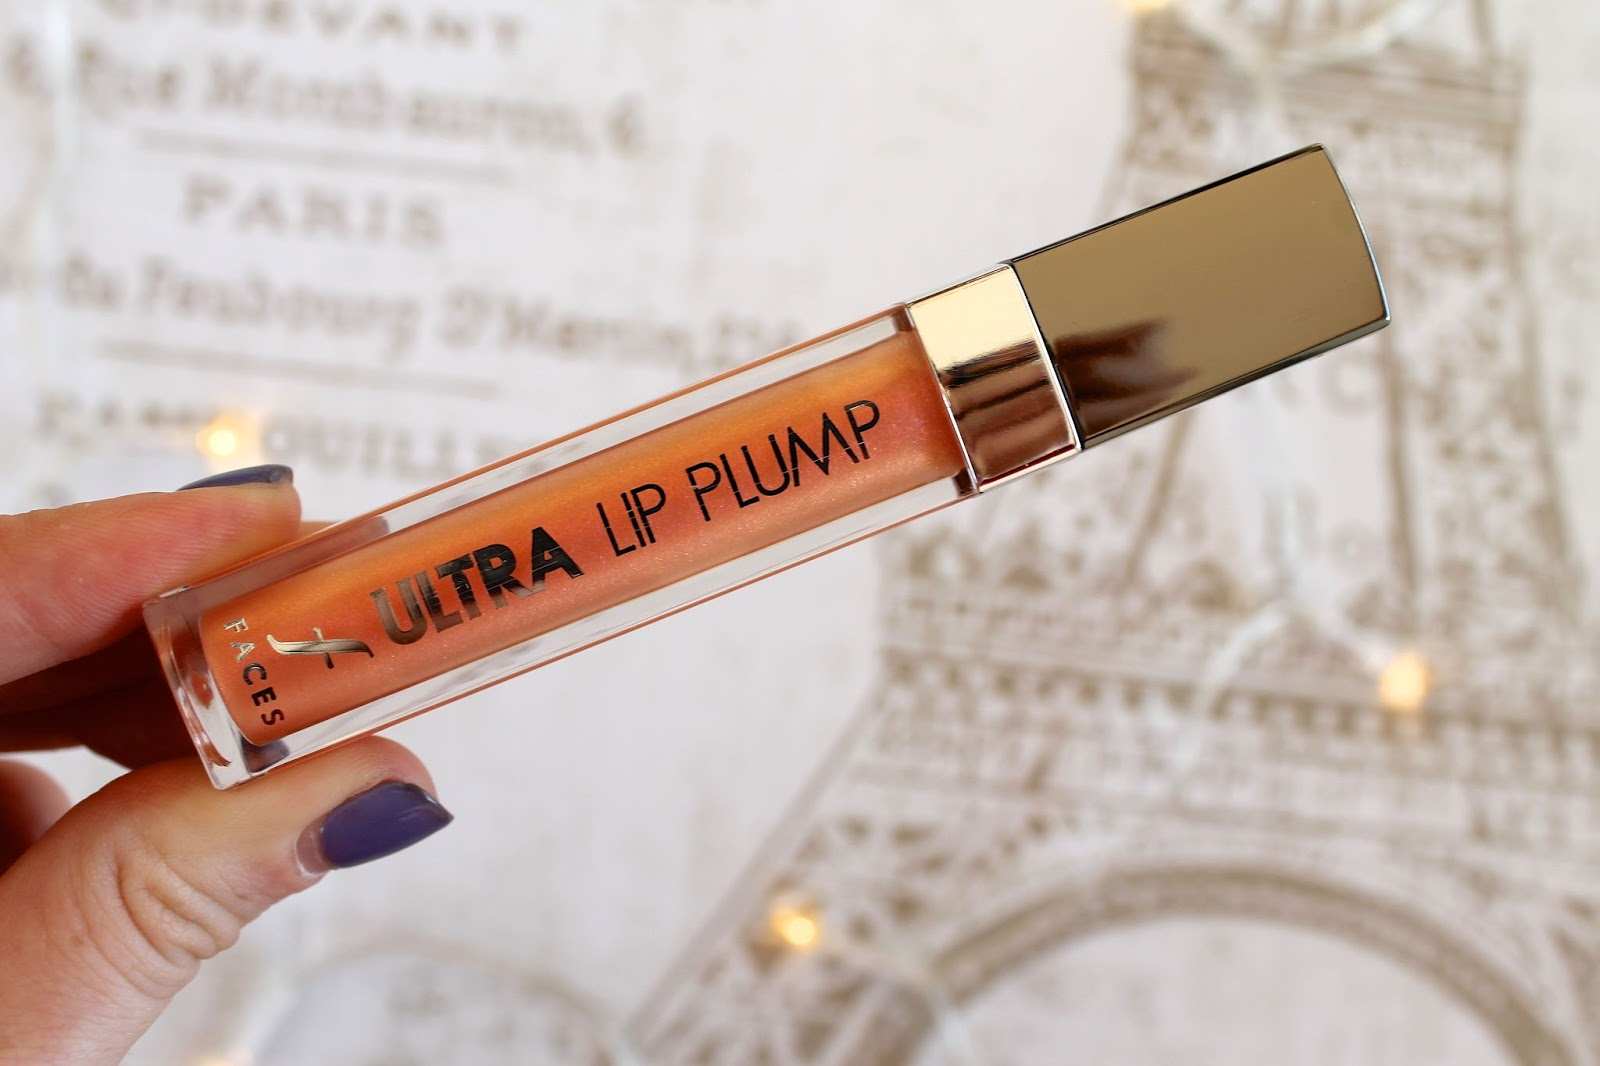 Faces Ultra Lip Plump review